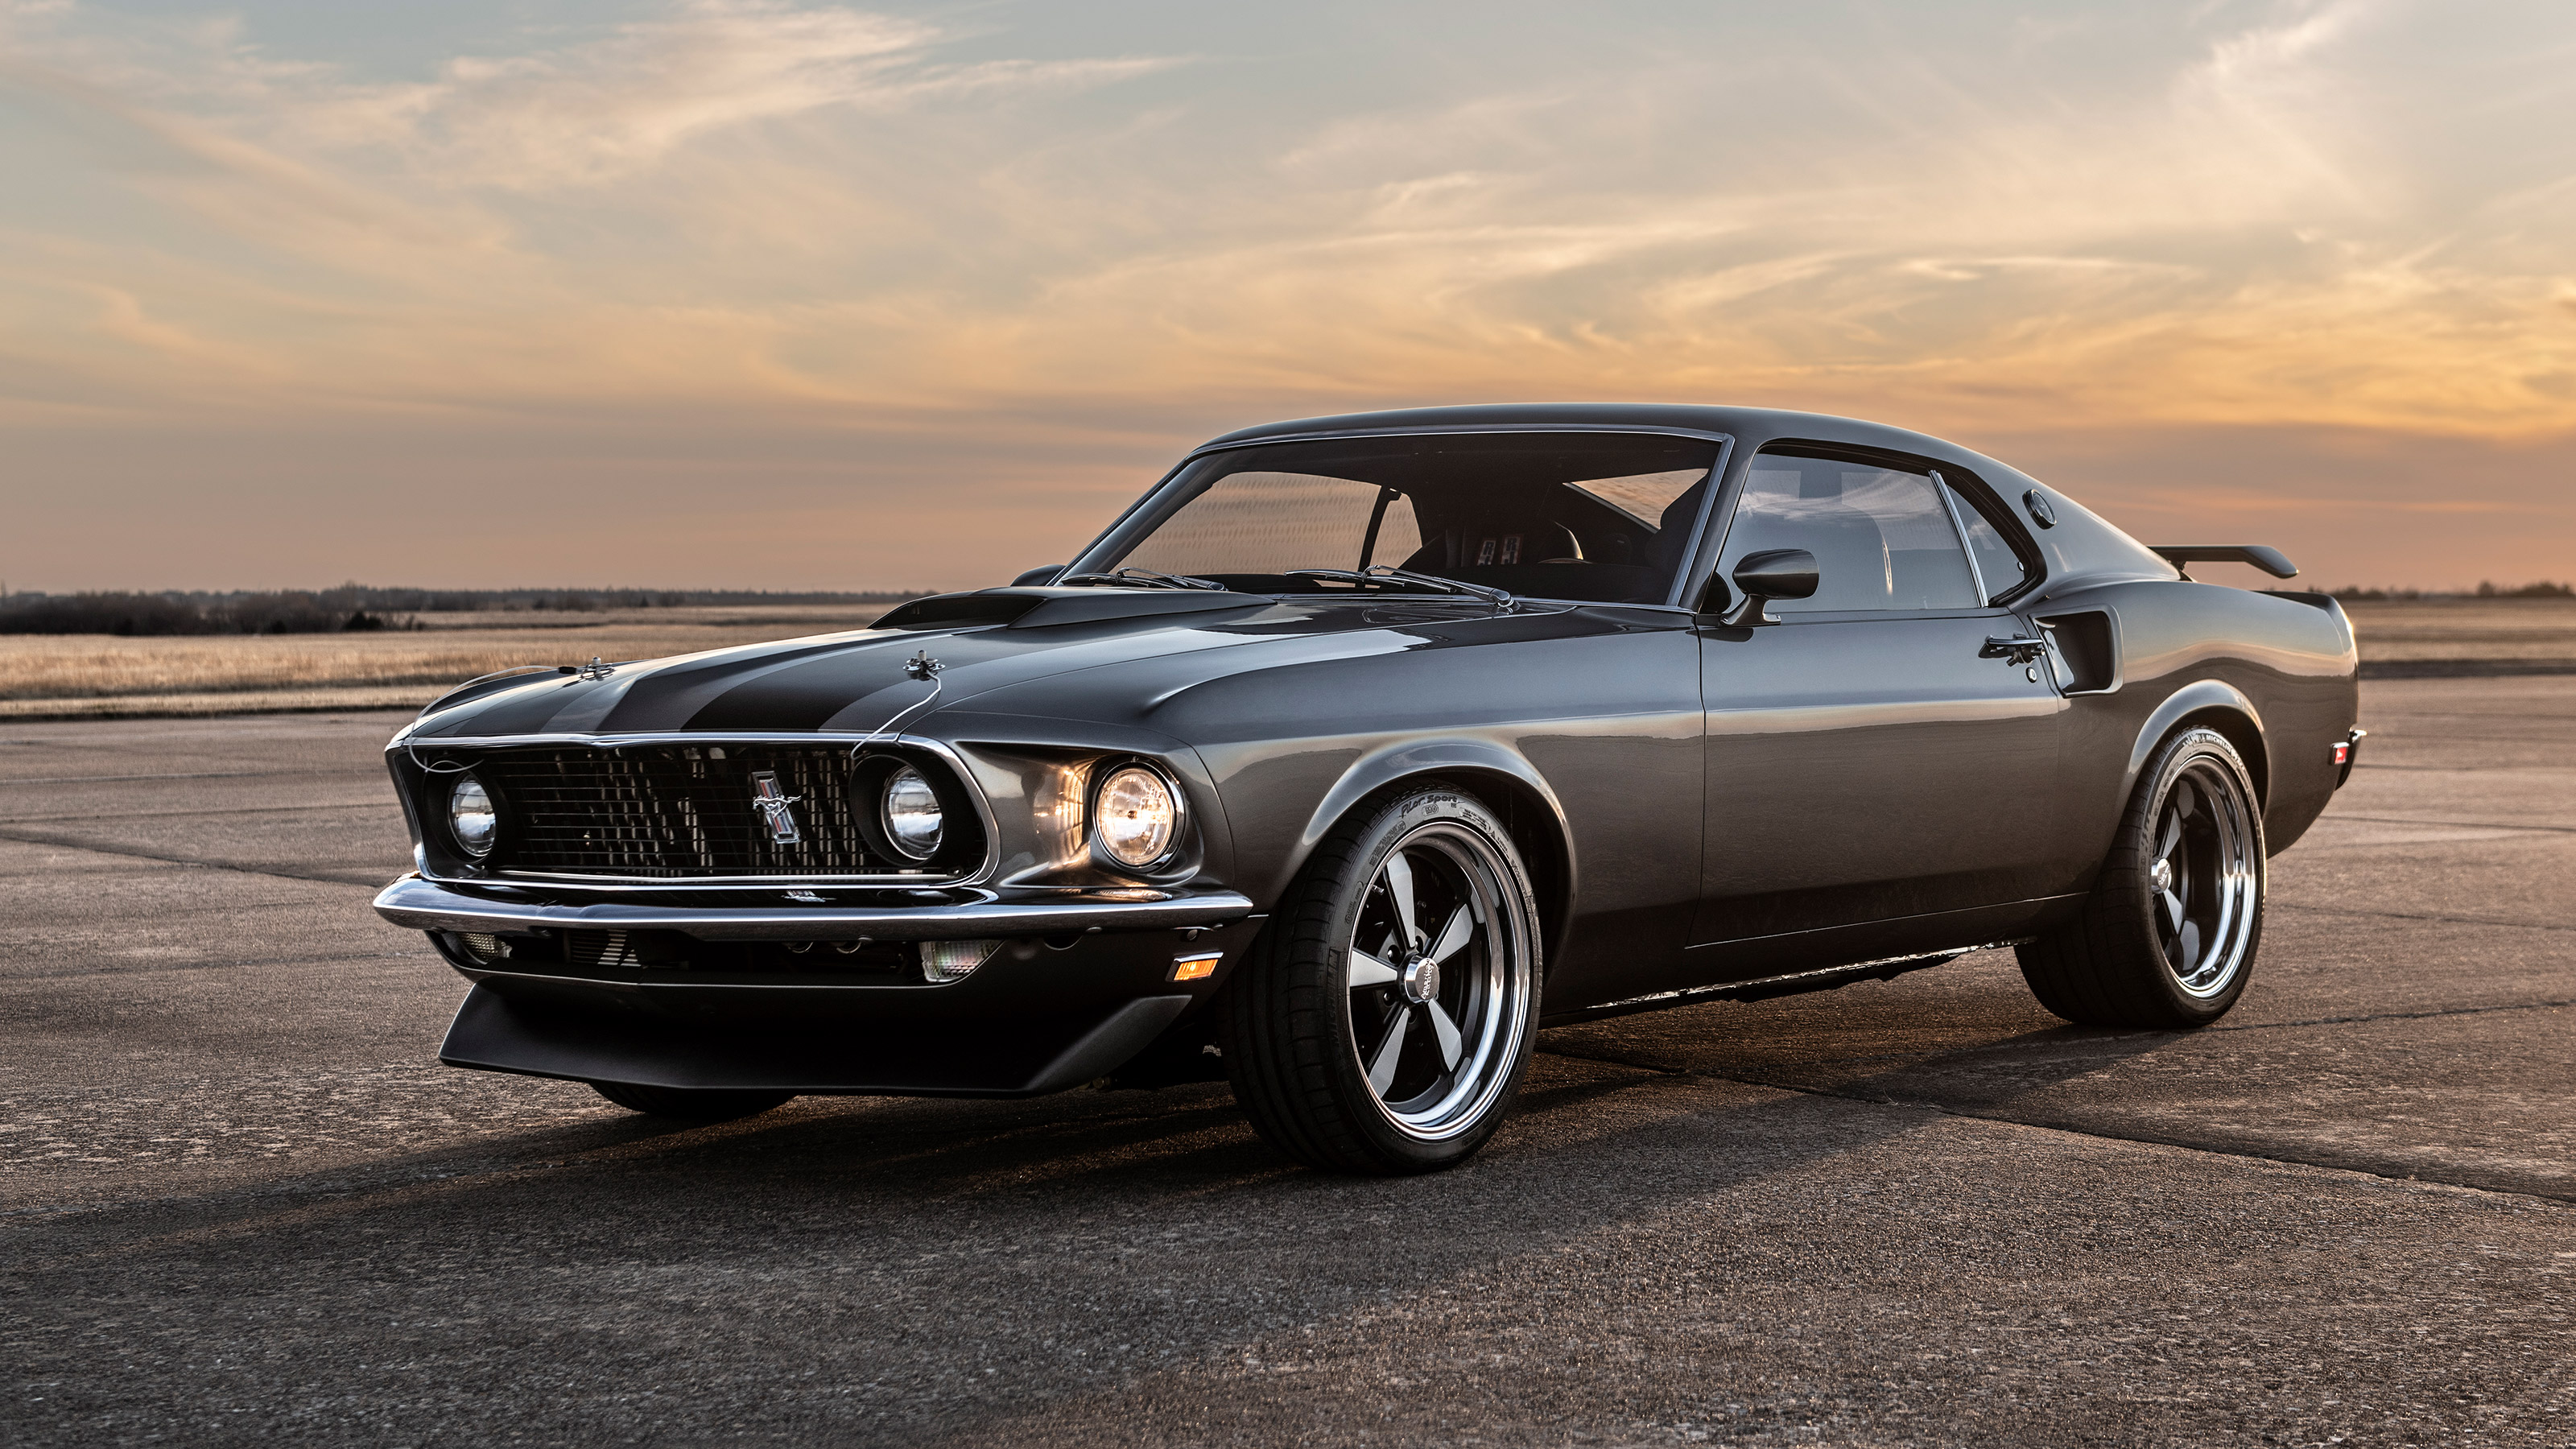 1969 Ford Mustang Mach 1 given 986bhp twin-turbocharged V8 | Evo